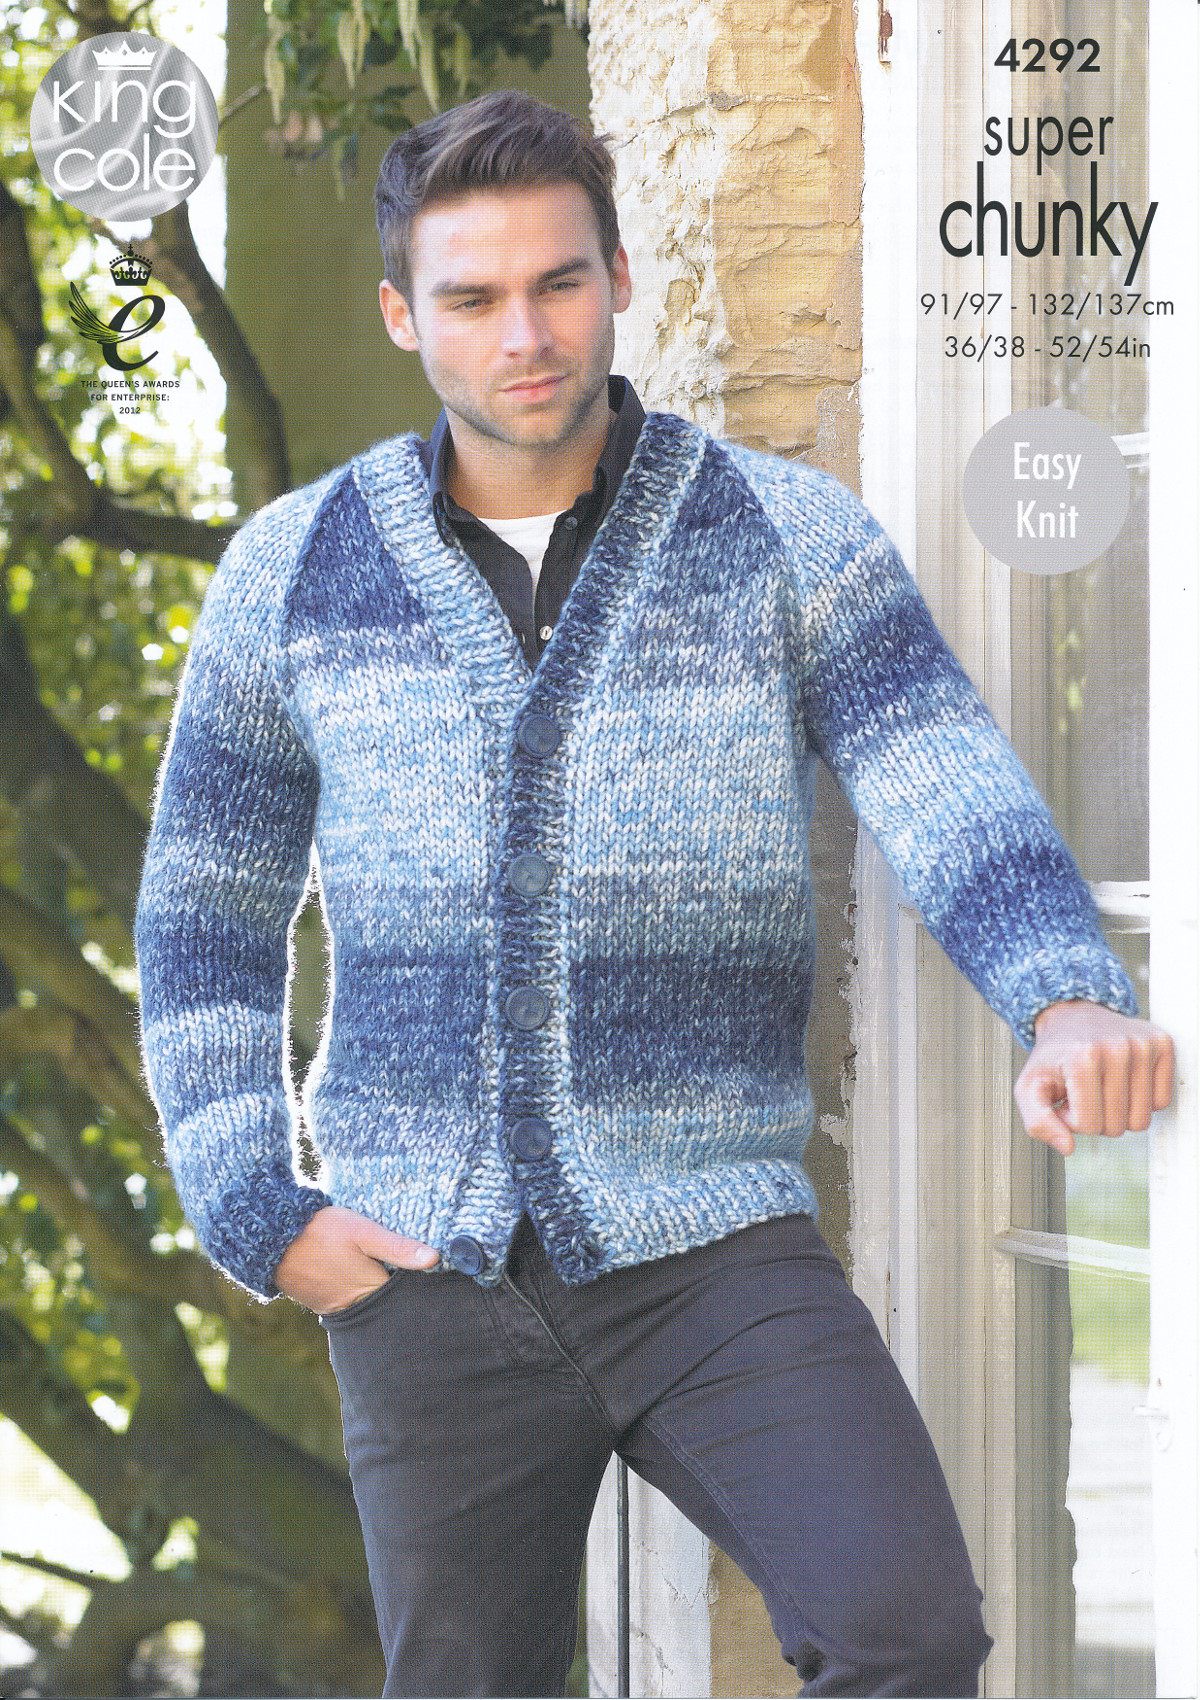 King Cole Mens Super Chunky Knitting Pattern V Neck Sweater ...